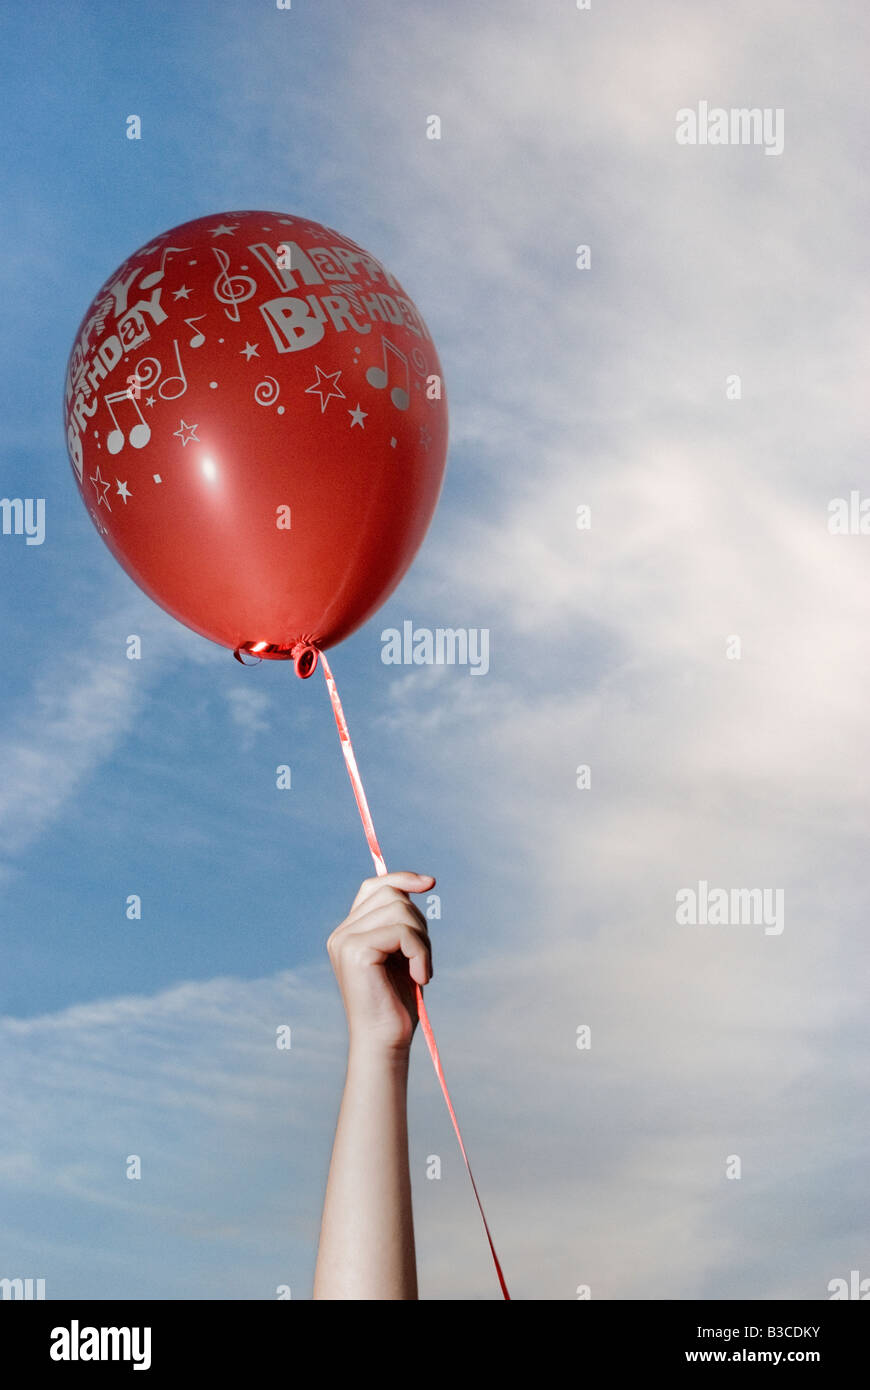 child holds red balloon - Stock Image